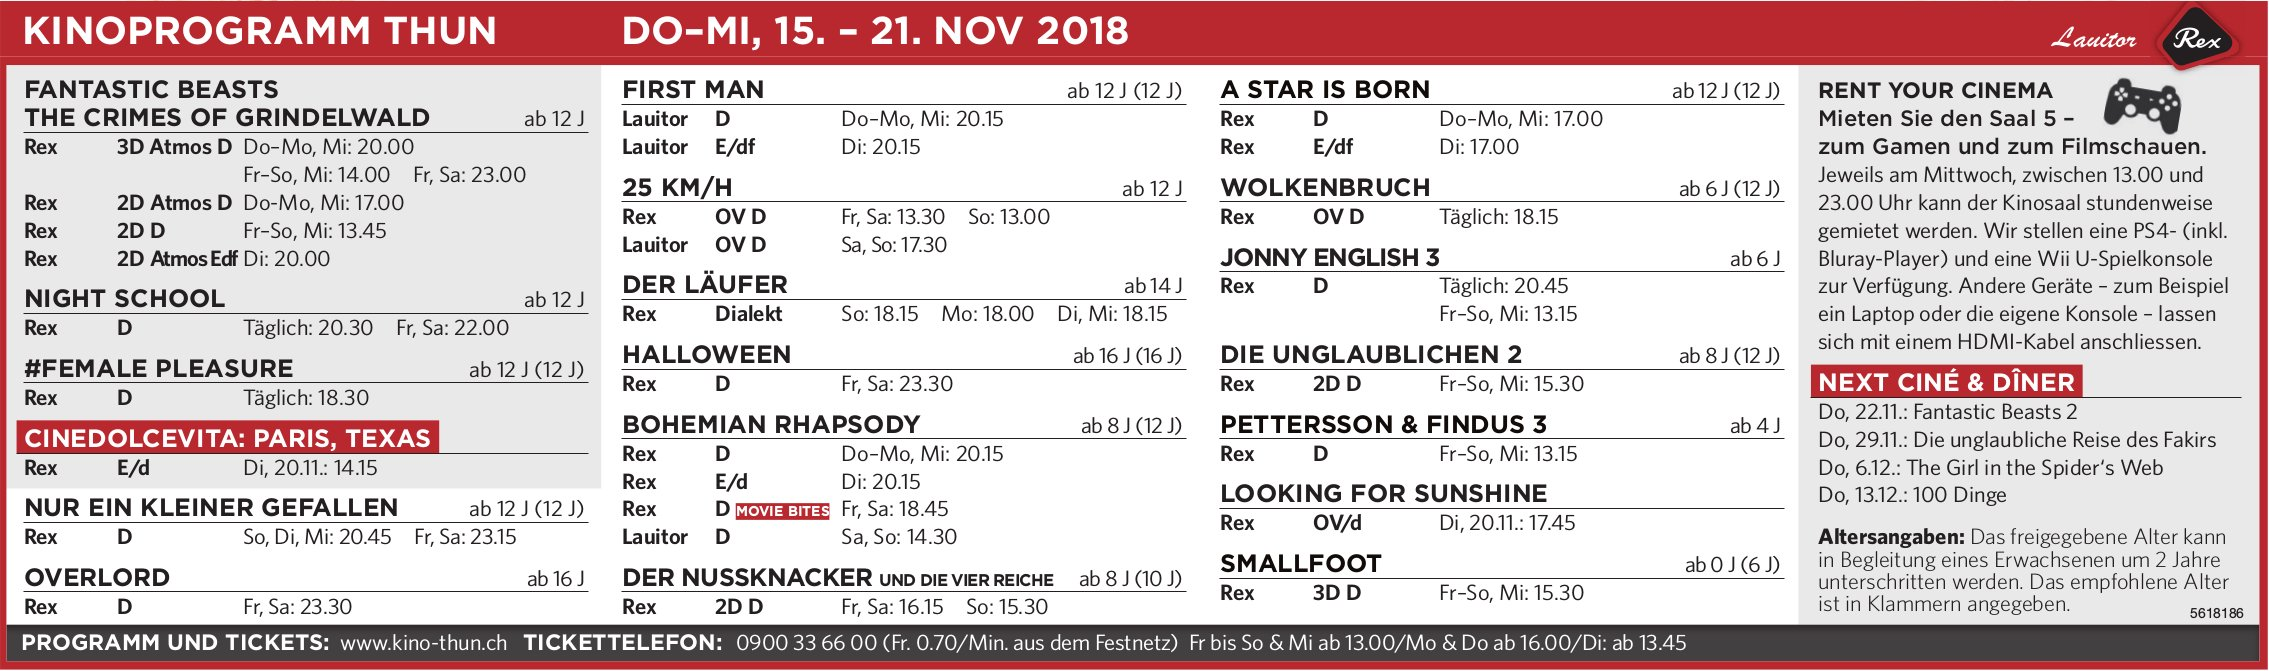 KINOPROGRAMM THUN, DO–MI, 15. – 21. NOV.